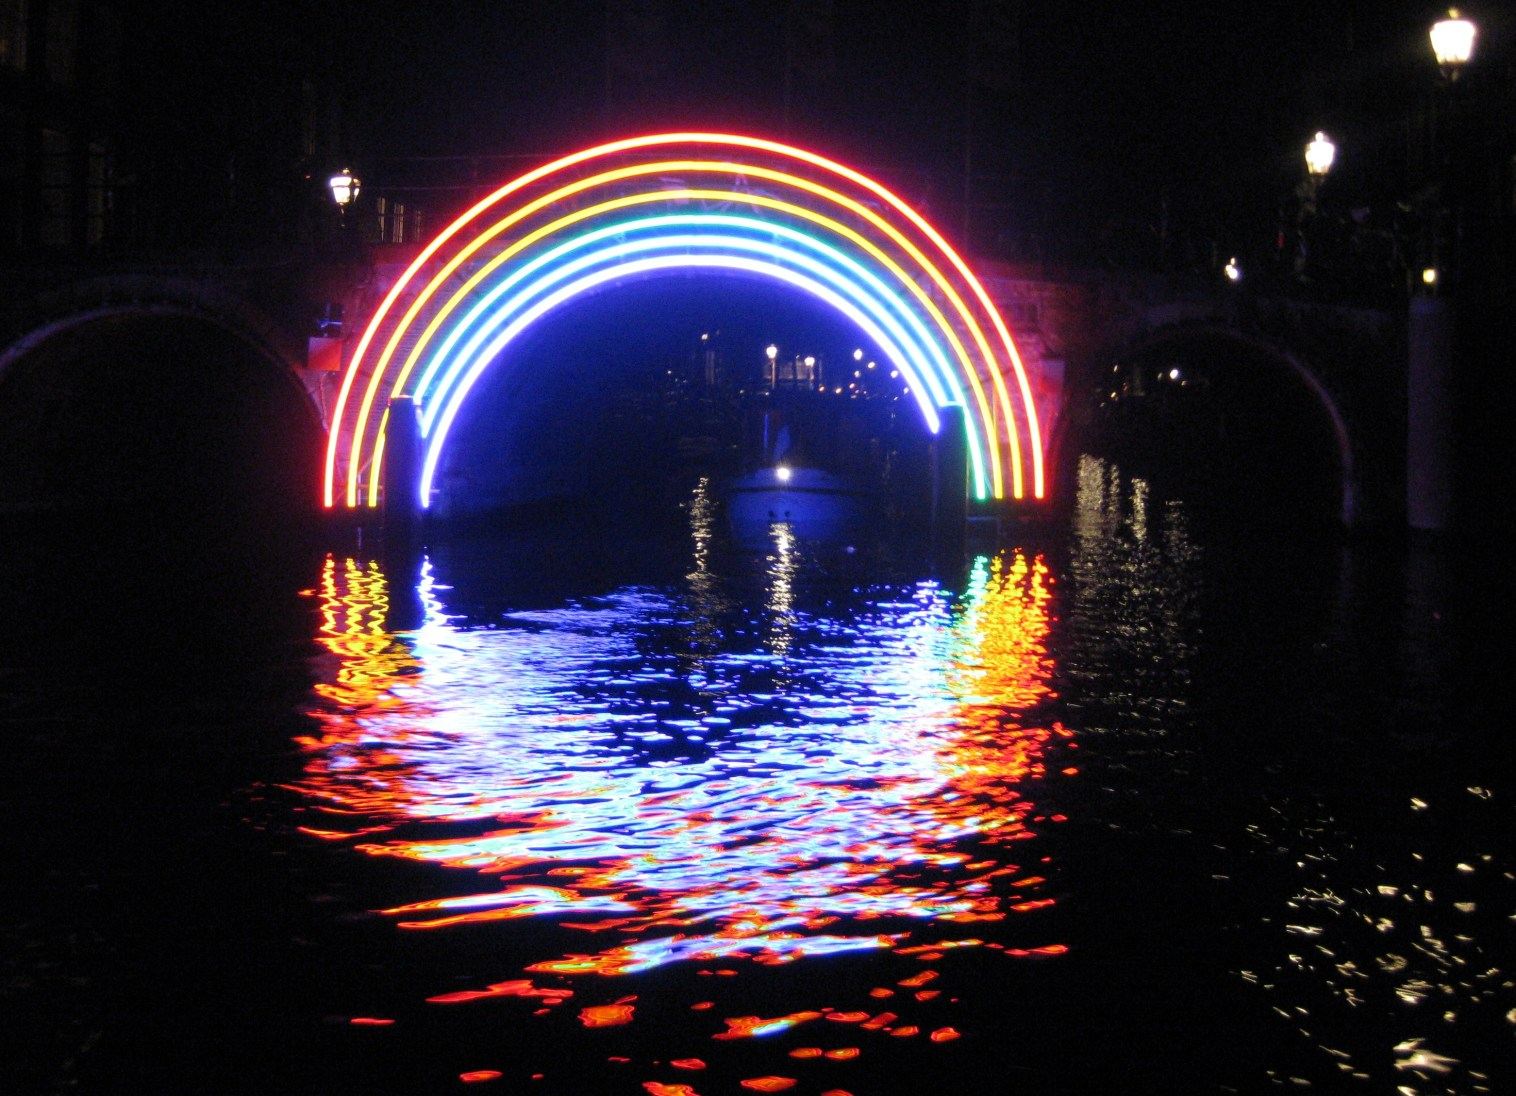 Light Festival 2020.Book Ahead For Amsterdam Light Festival 2019 2020